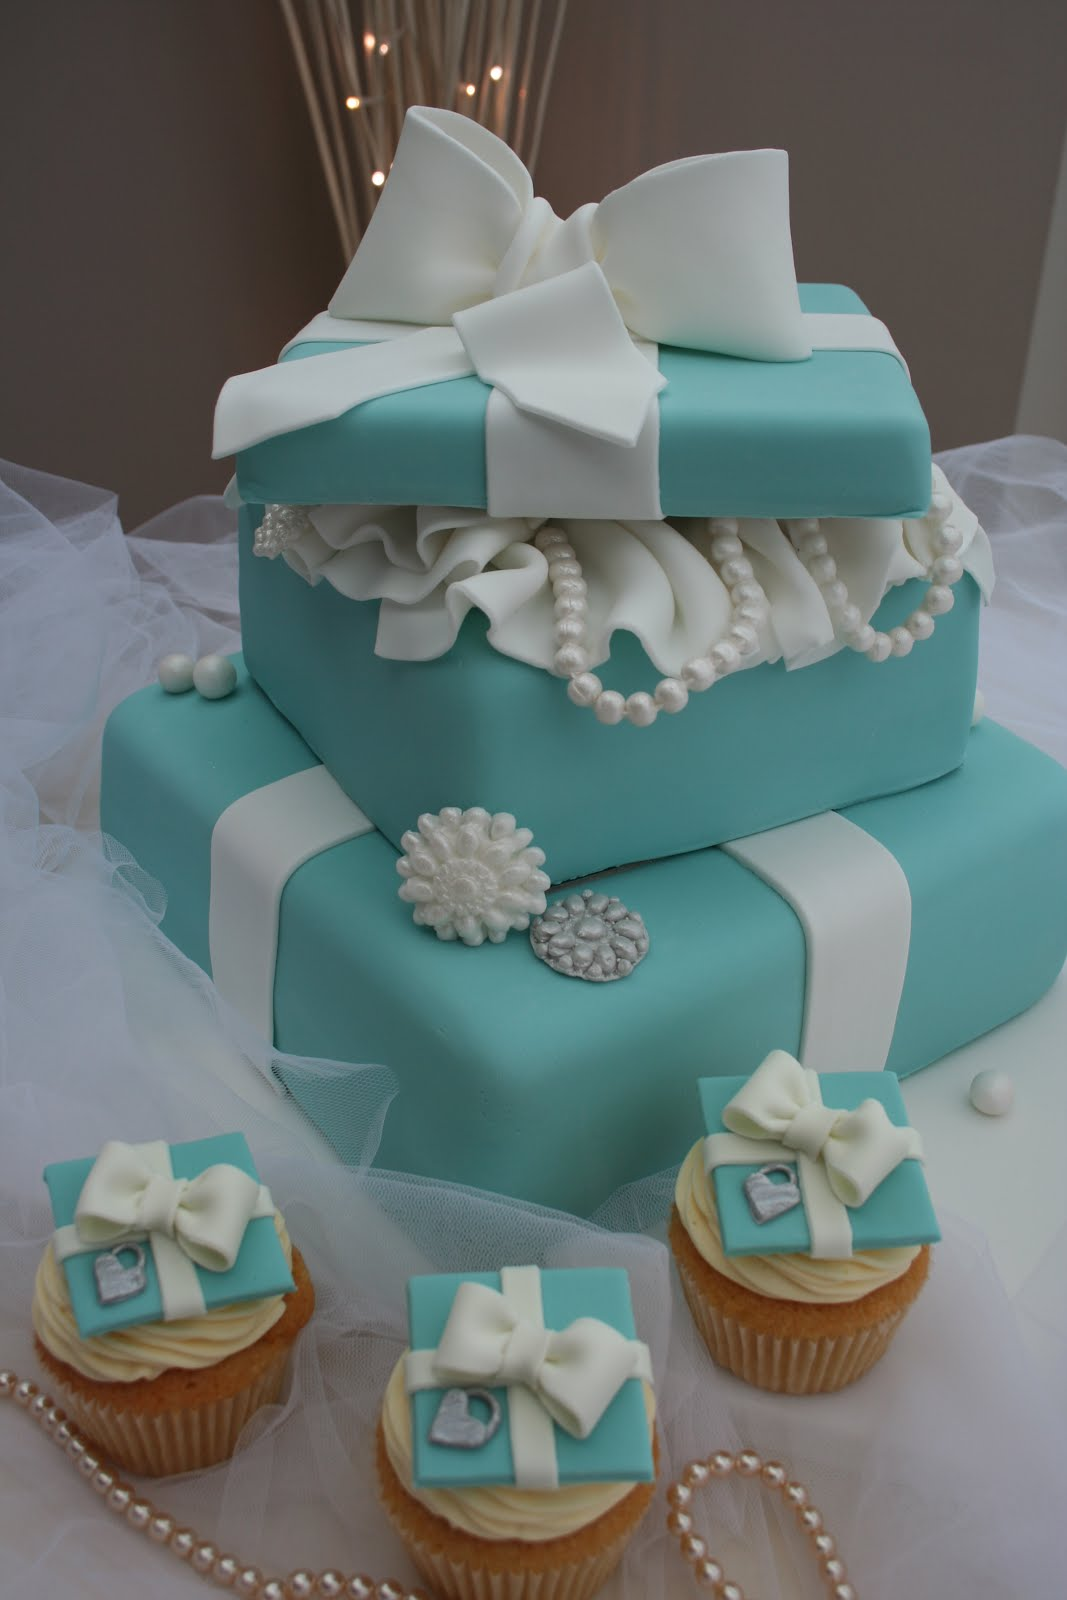 Katies Cupcakes 2 Tiered Tiffany Cake